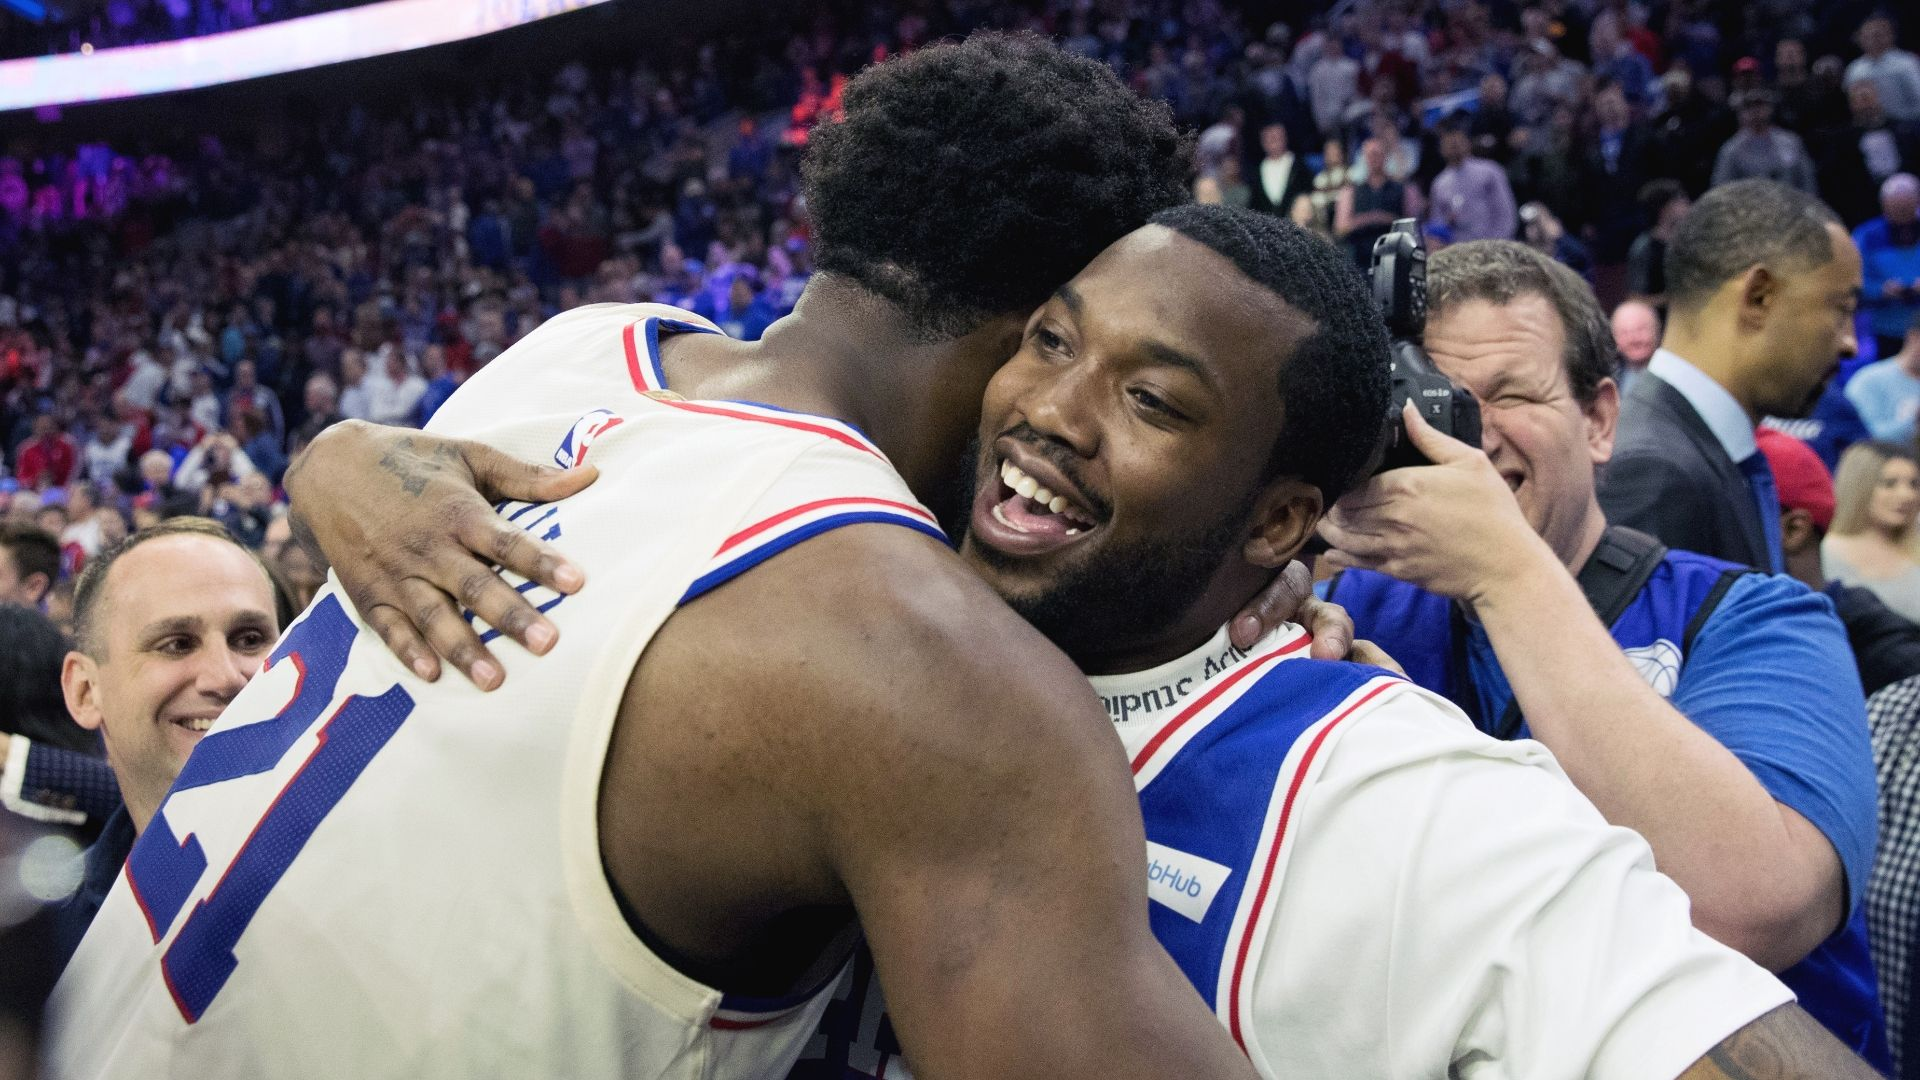 Meek Mill enjoys his freedom at 76ers' game